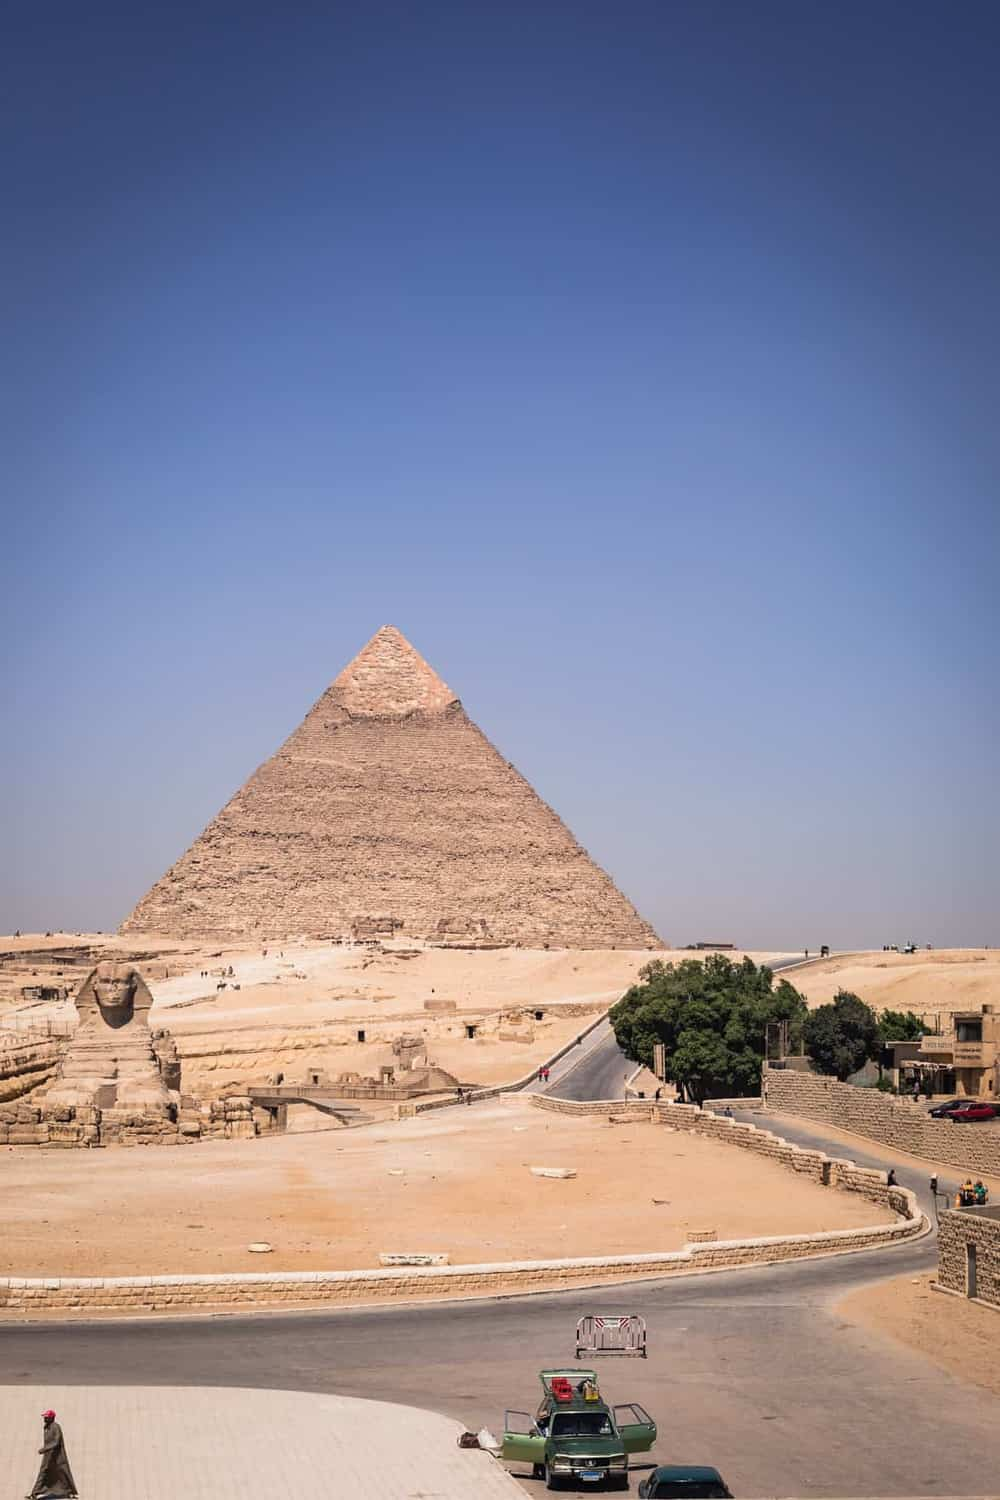 Giza, the Great Pyramids, Cairo.